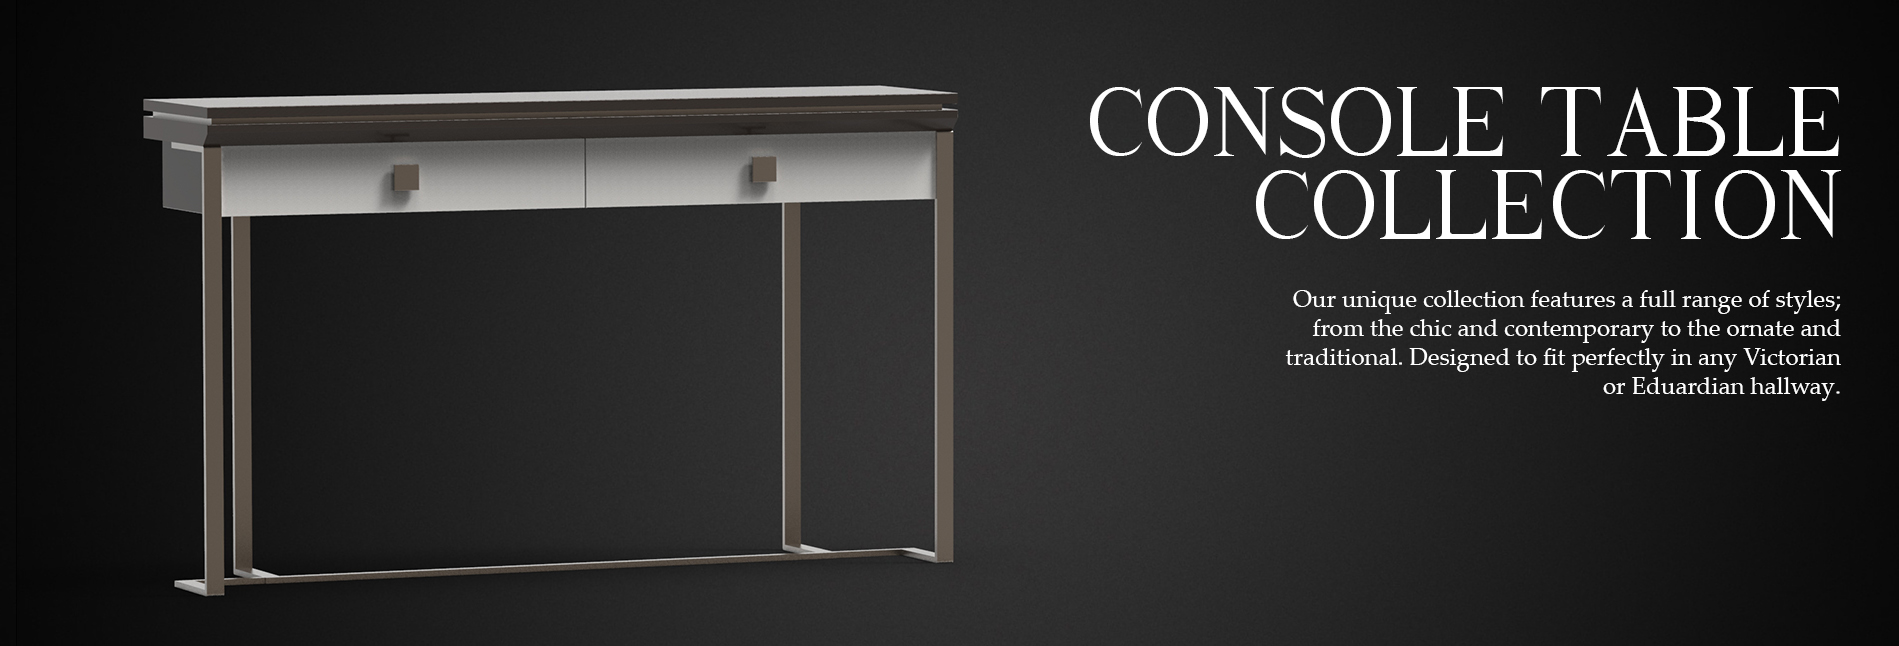 LFL-CONSOLE-TABLE-BANNER.jpg